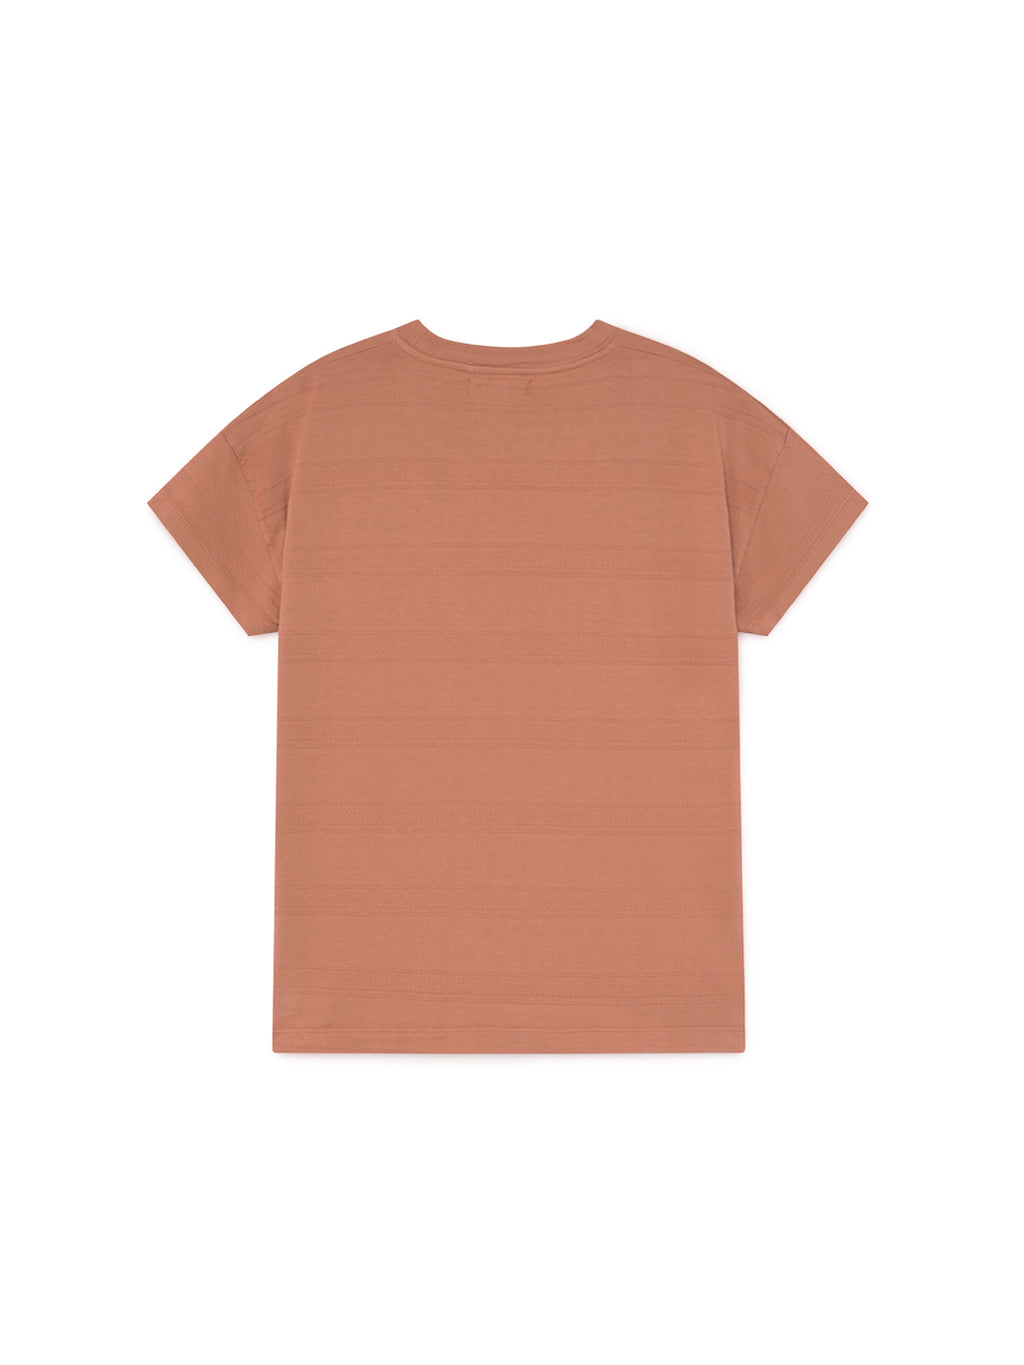 TWOTHIRDS Womens Tee: Tahiti - pale brick. product close up back